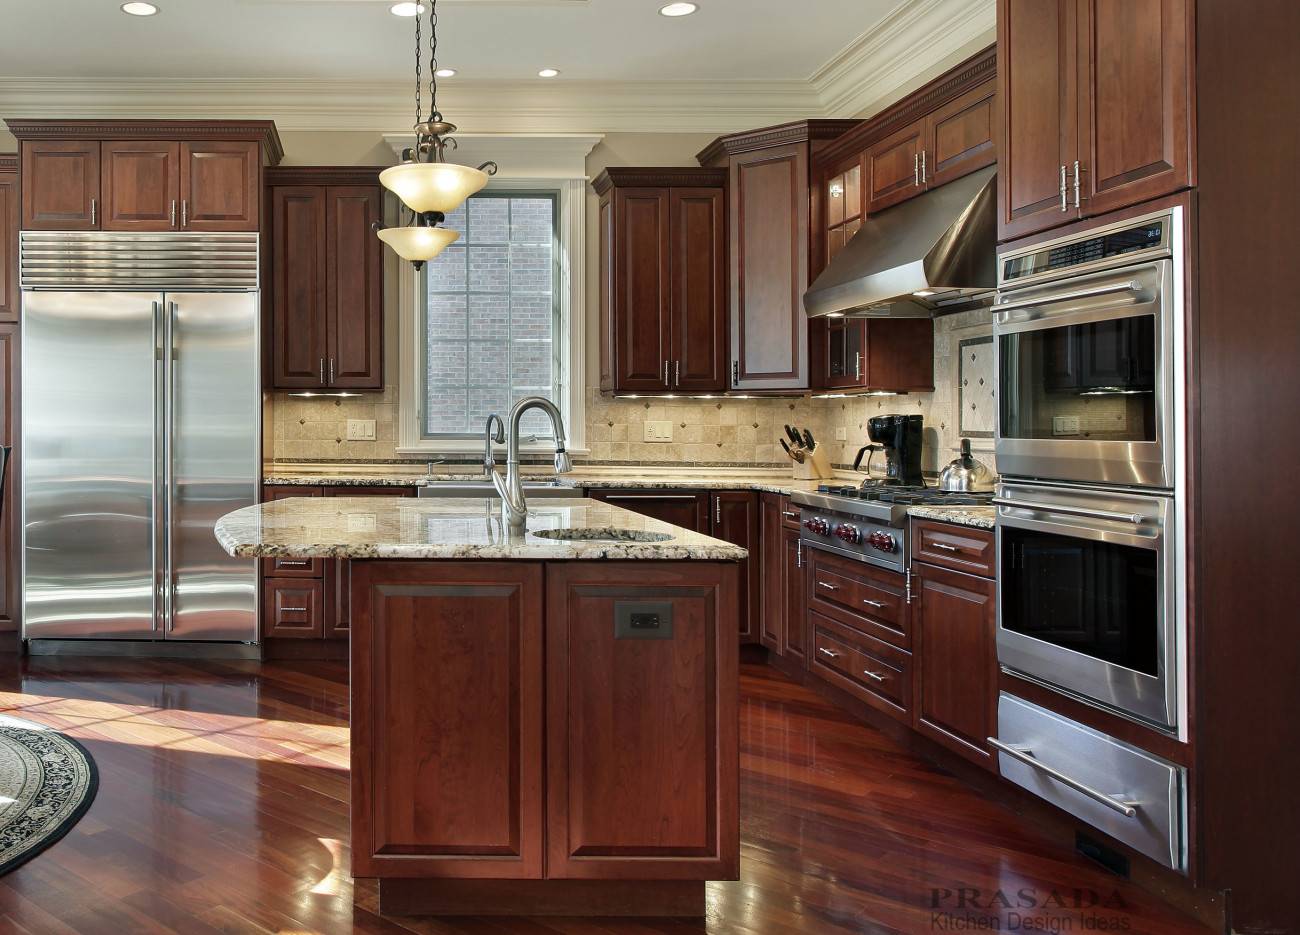 PRASADA Kitchens And Fine Cabinetry